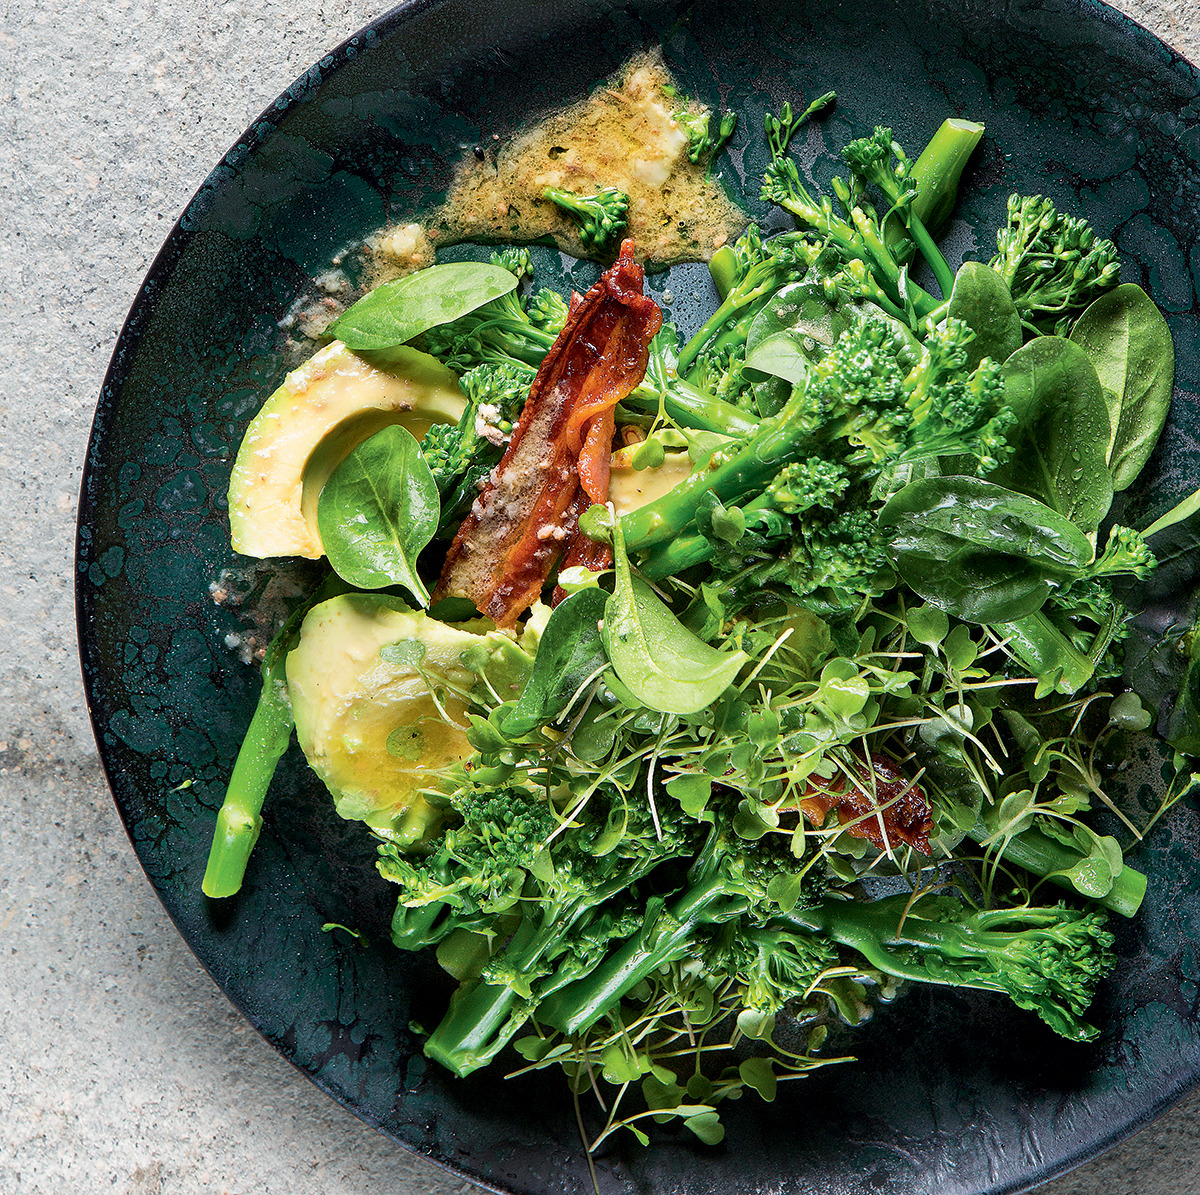 Tenderstem broccoli, avocado and bacon dressed with warm anchovy butter recipe